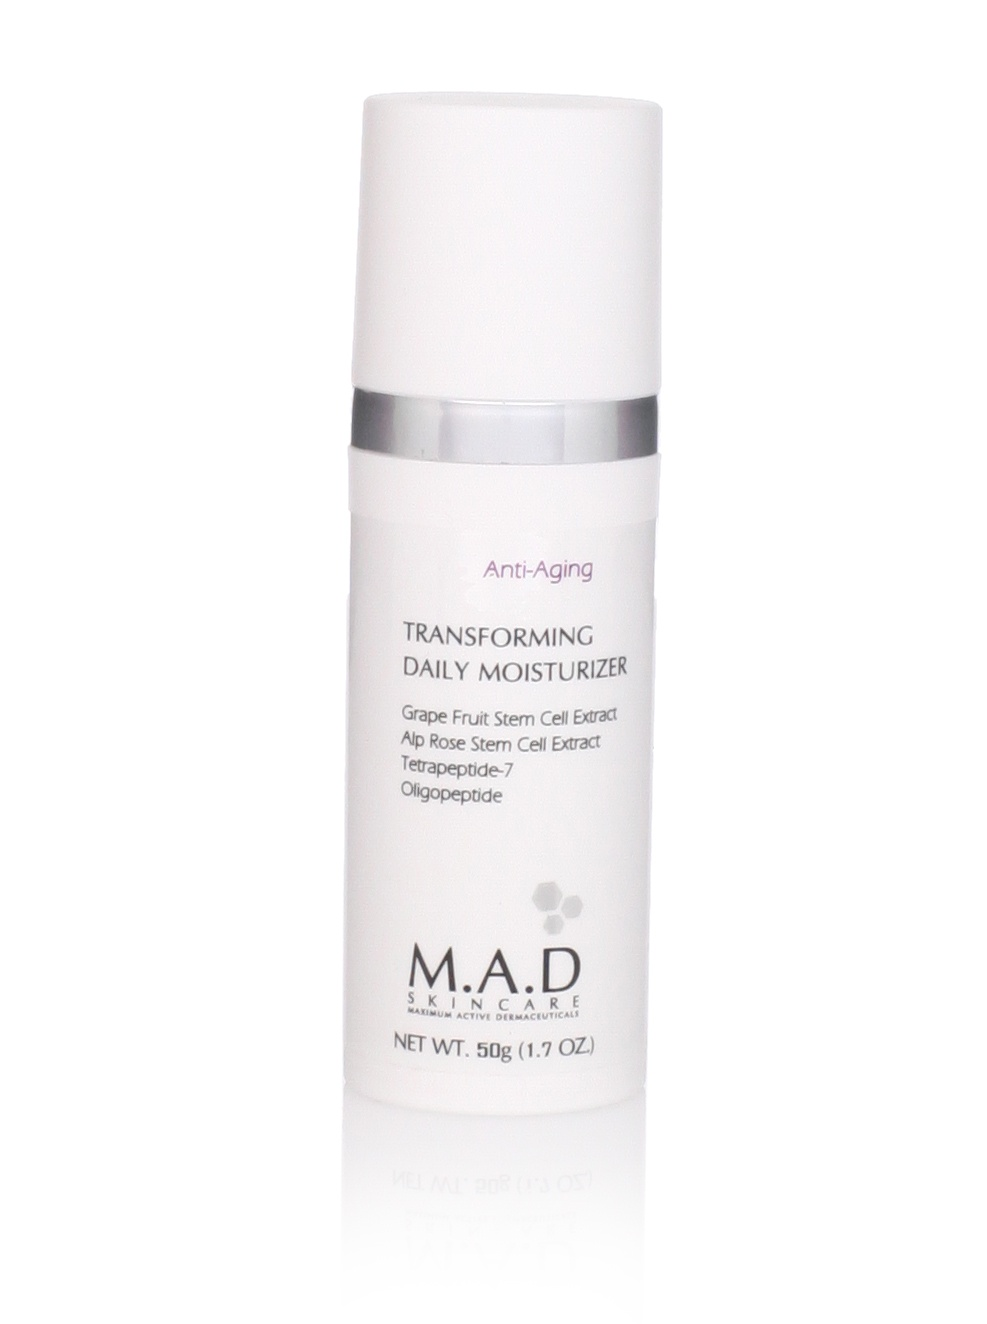 M.A.D Skincare Anti-Aging Transforming 1.7 Daily Challenge the lowest price of Japan oz. Moisturizer Max 52% OFF